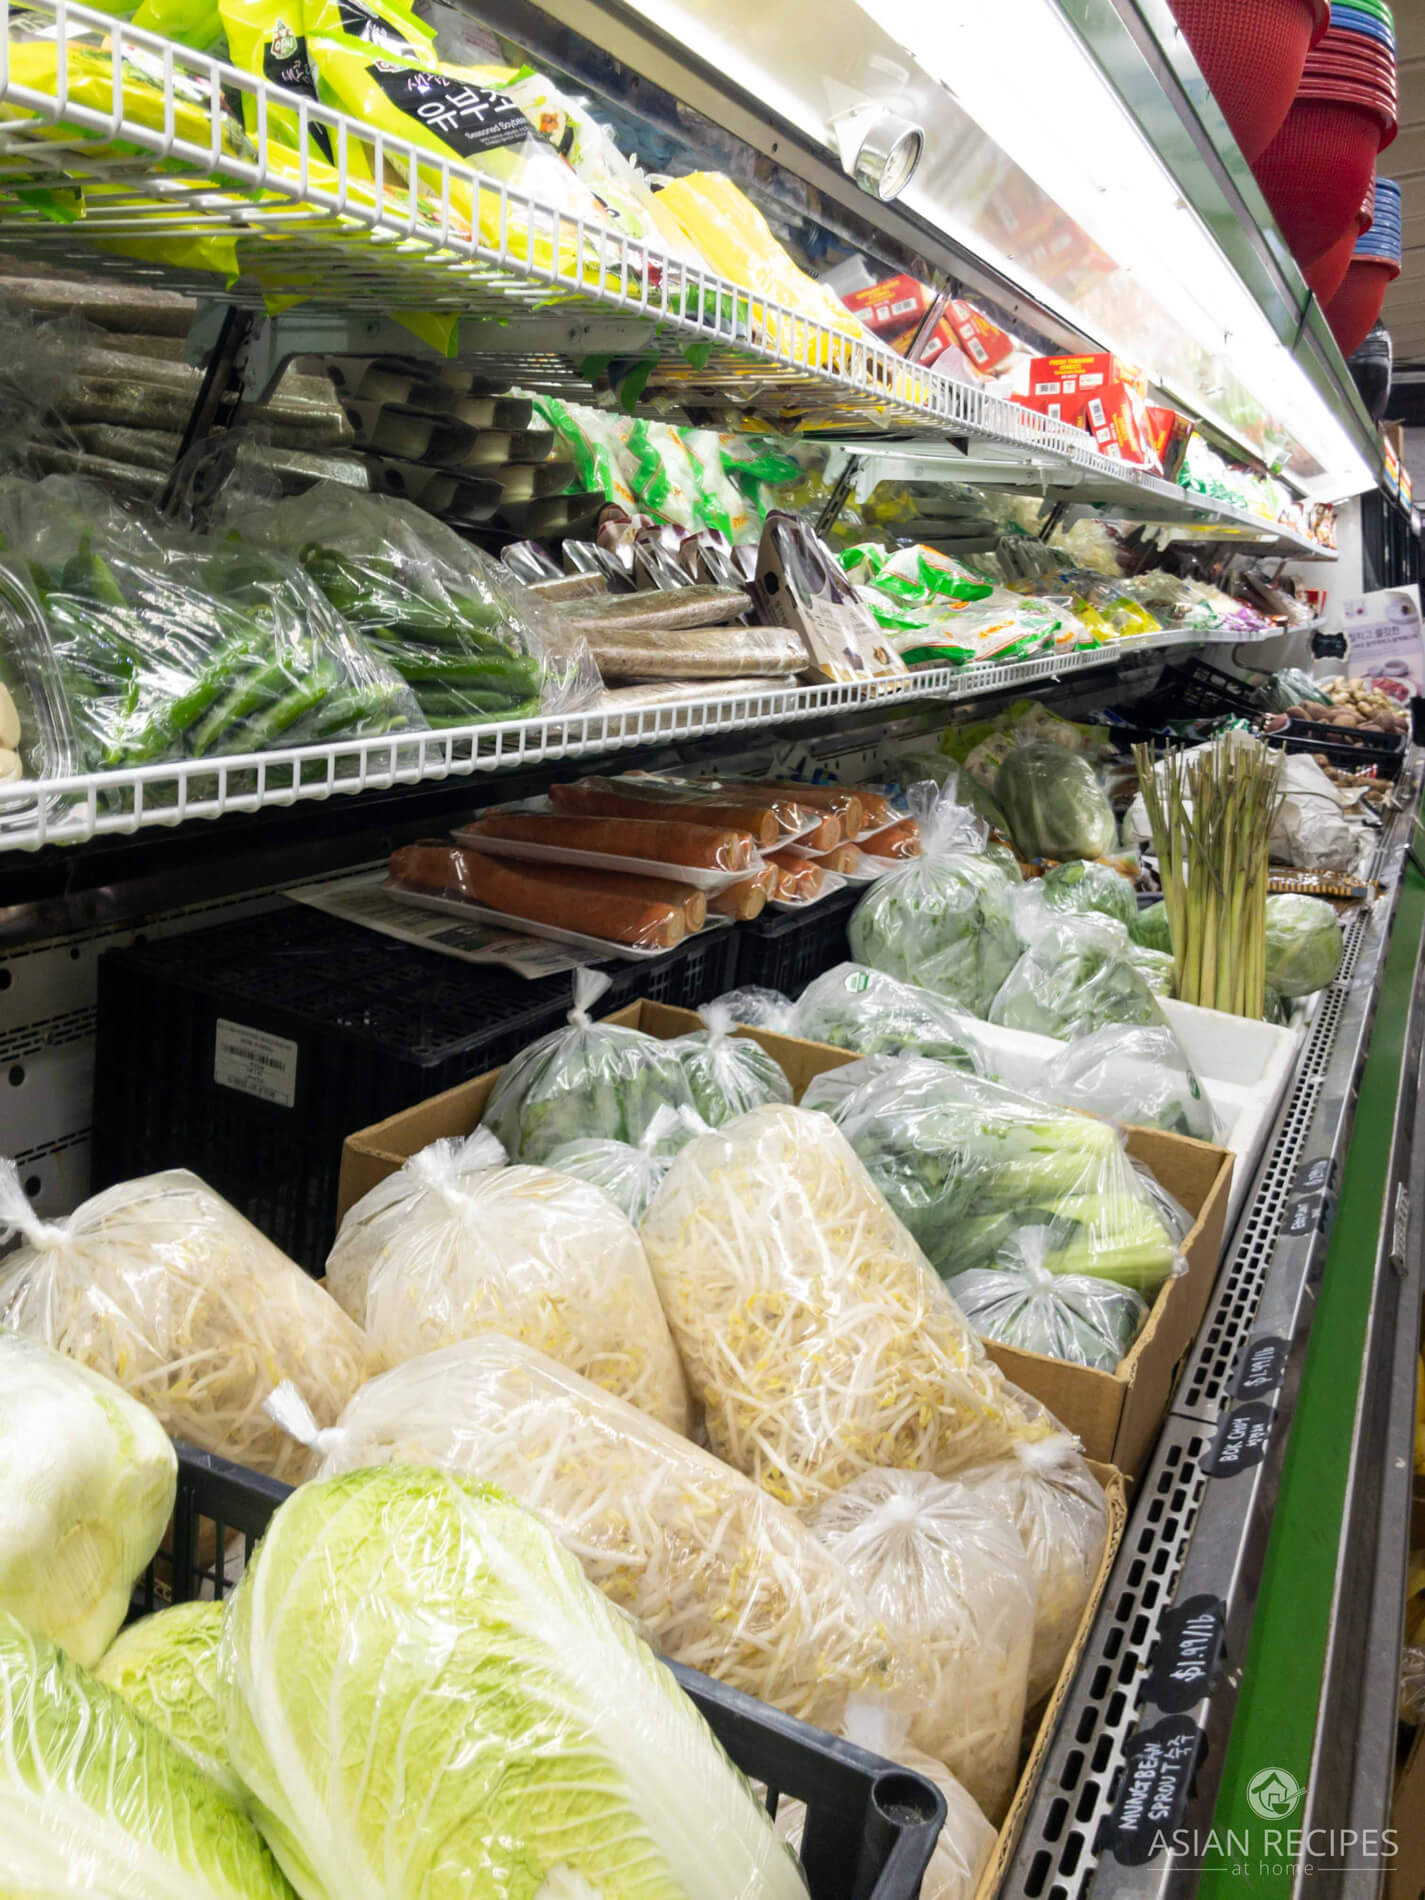 Vegetables at a local Korean grocery store.